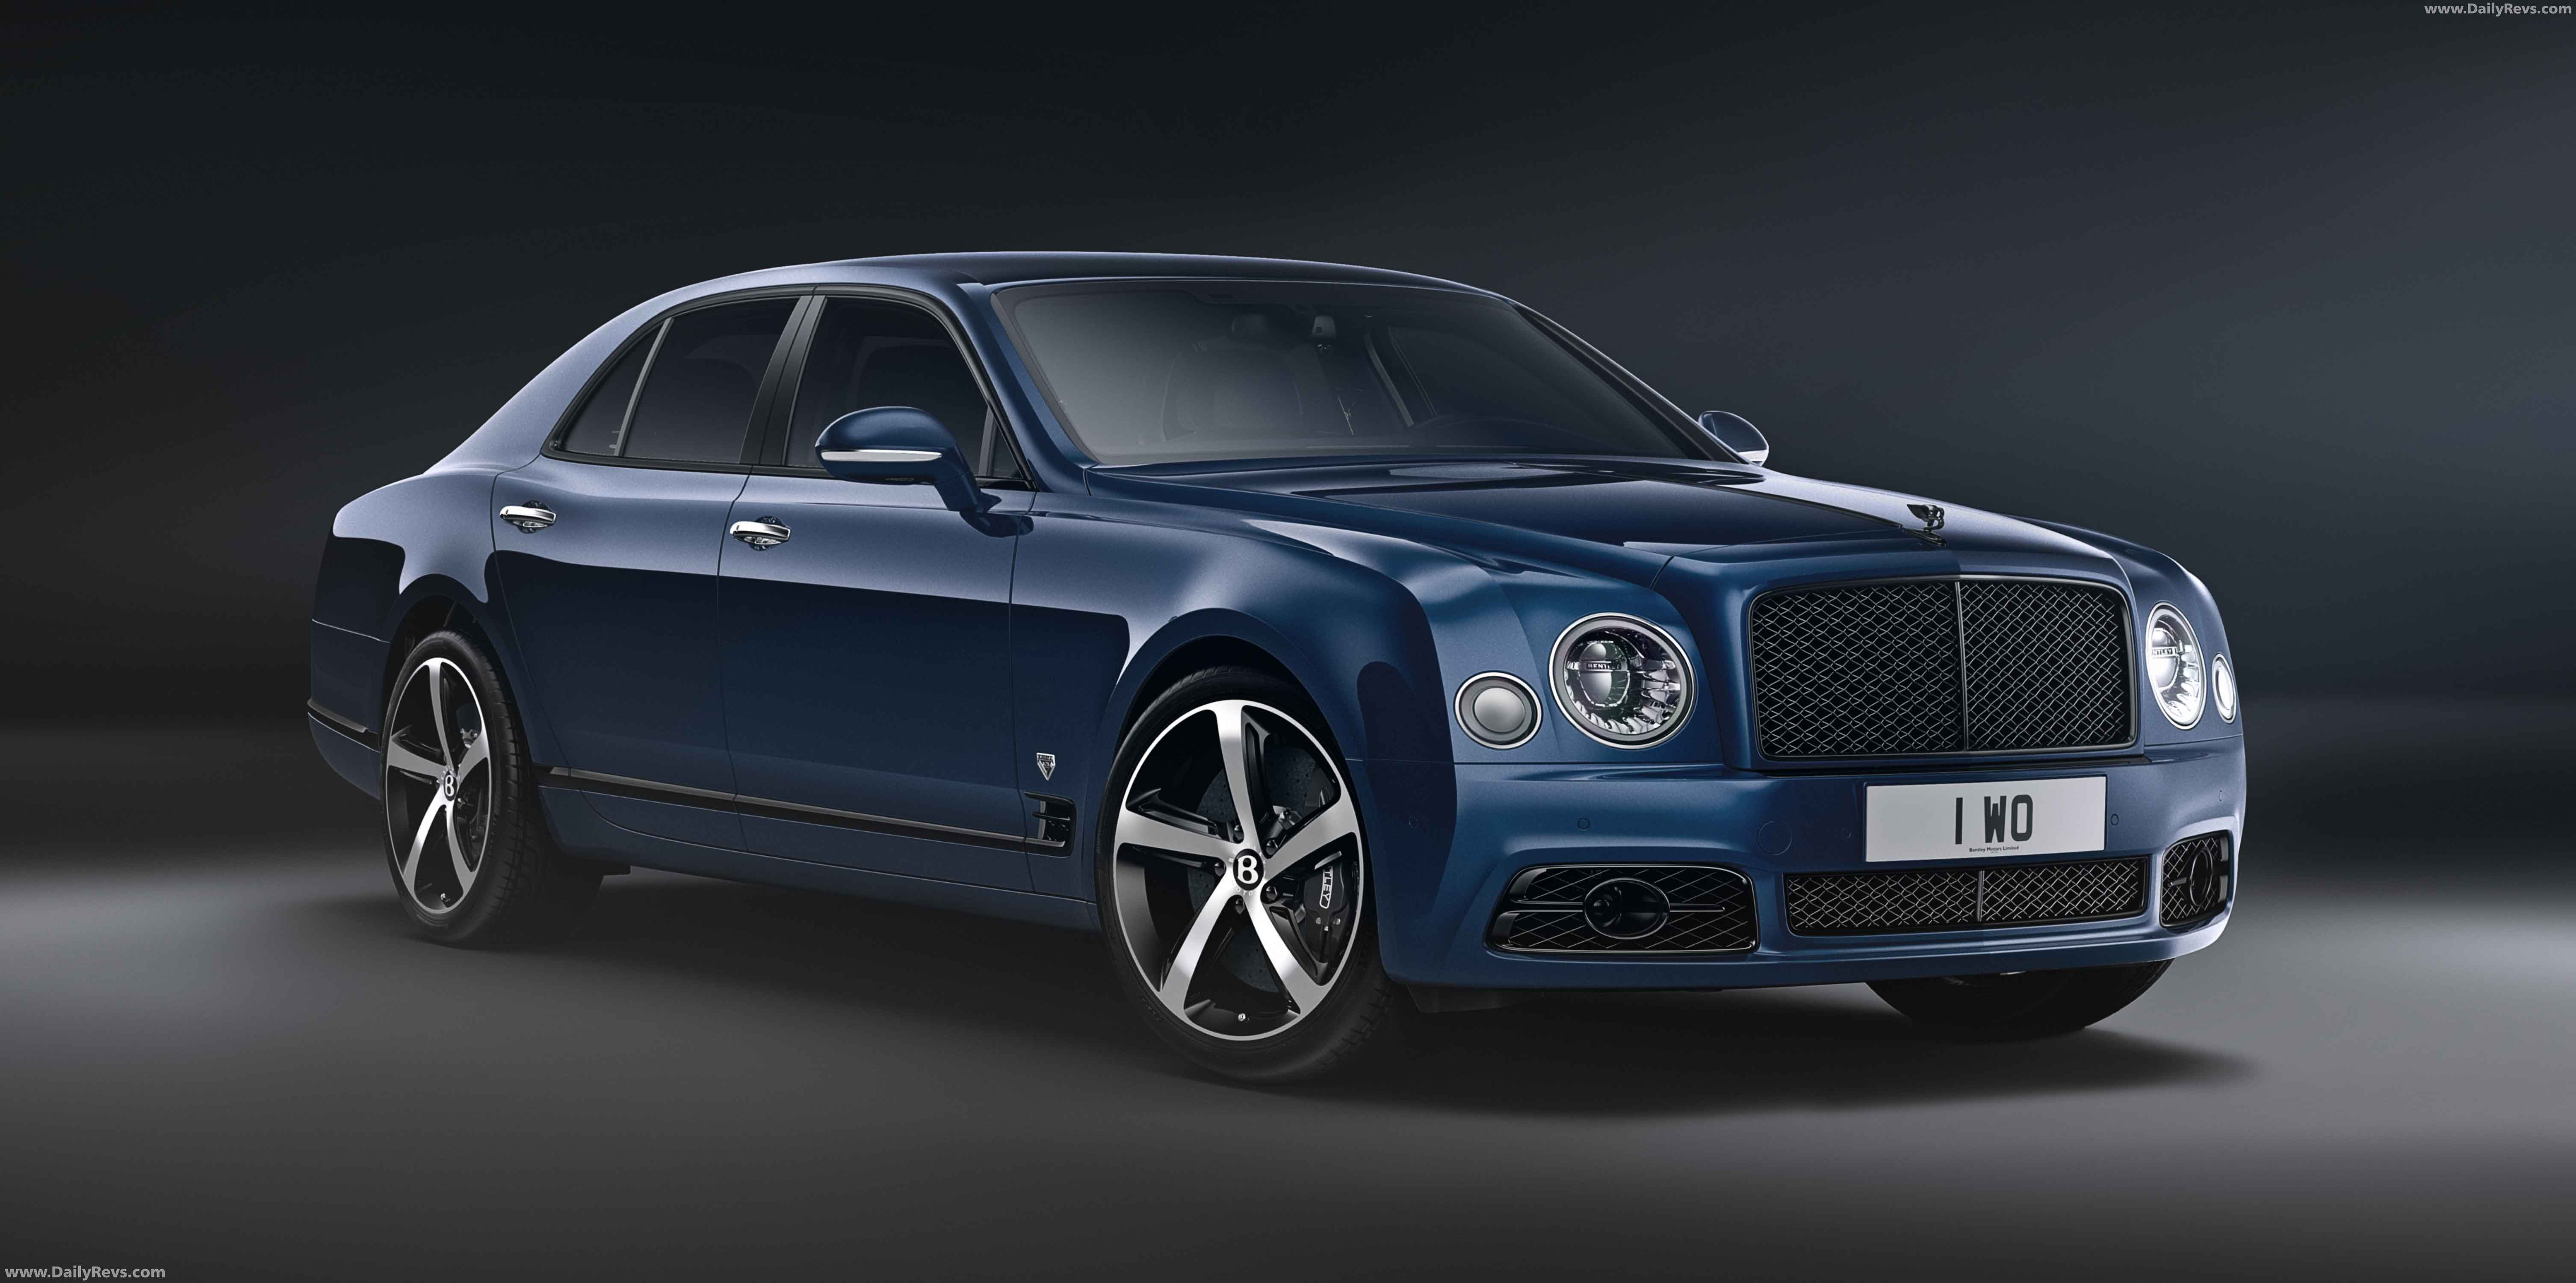 2020 Bentley Mulsanne 6.75 Edition by Mulliner - HD ...